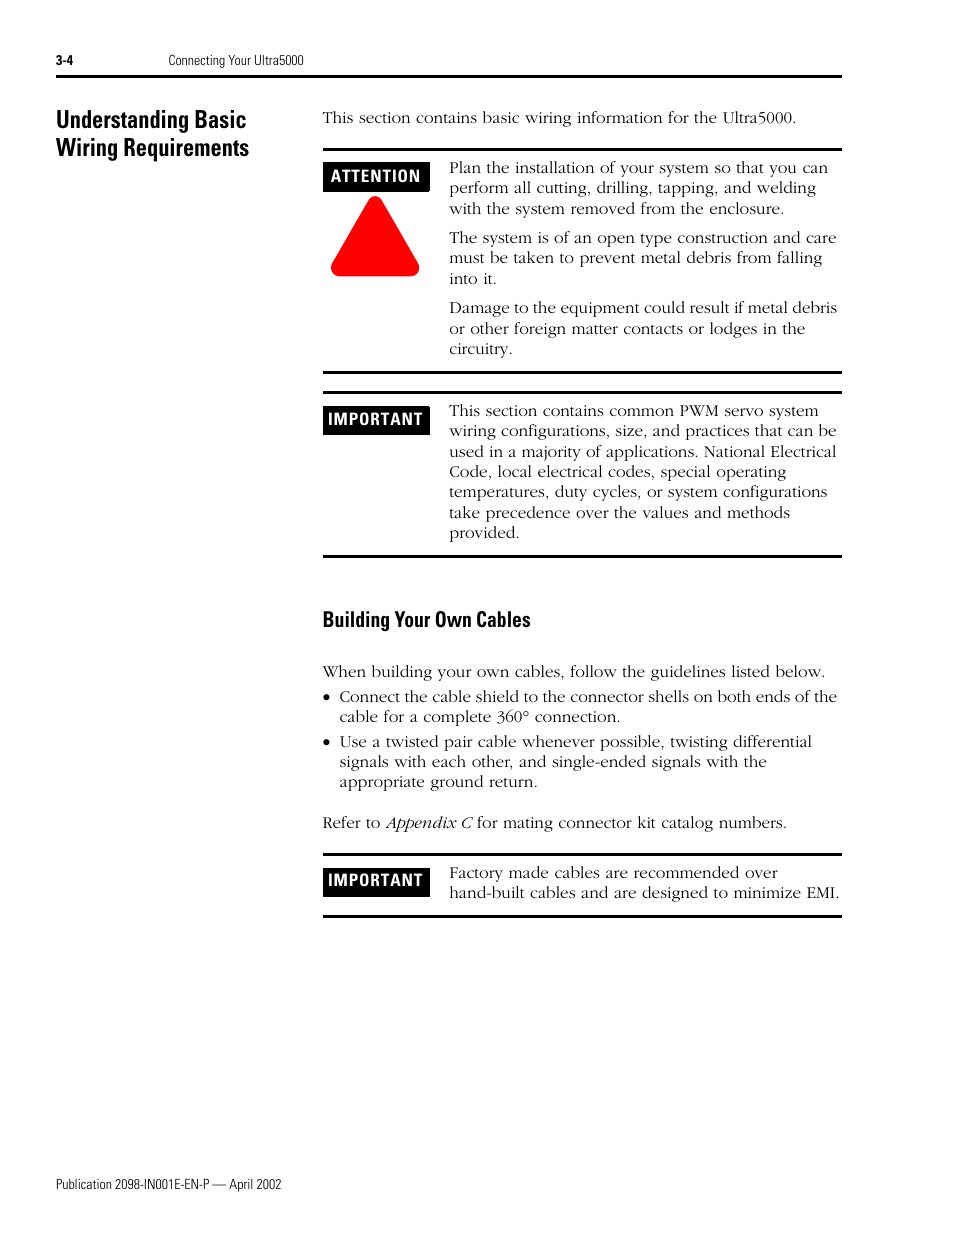 Understanding Basic Wiring Requirements Building Your Own Cables Type Of Codes 4